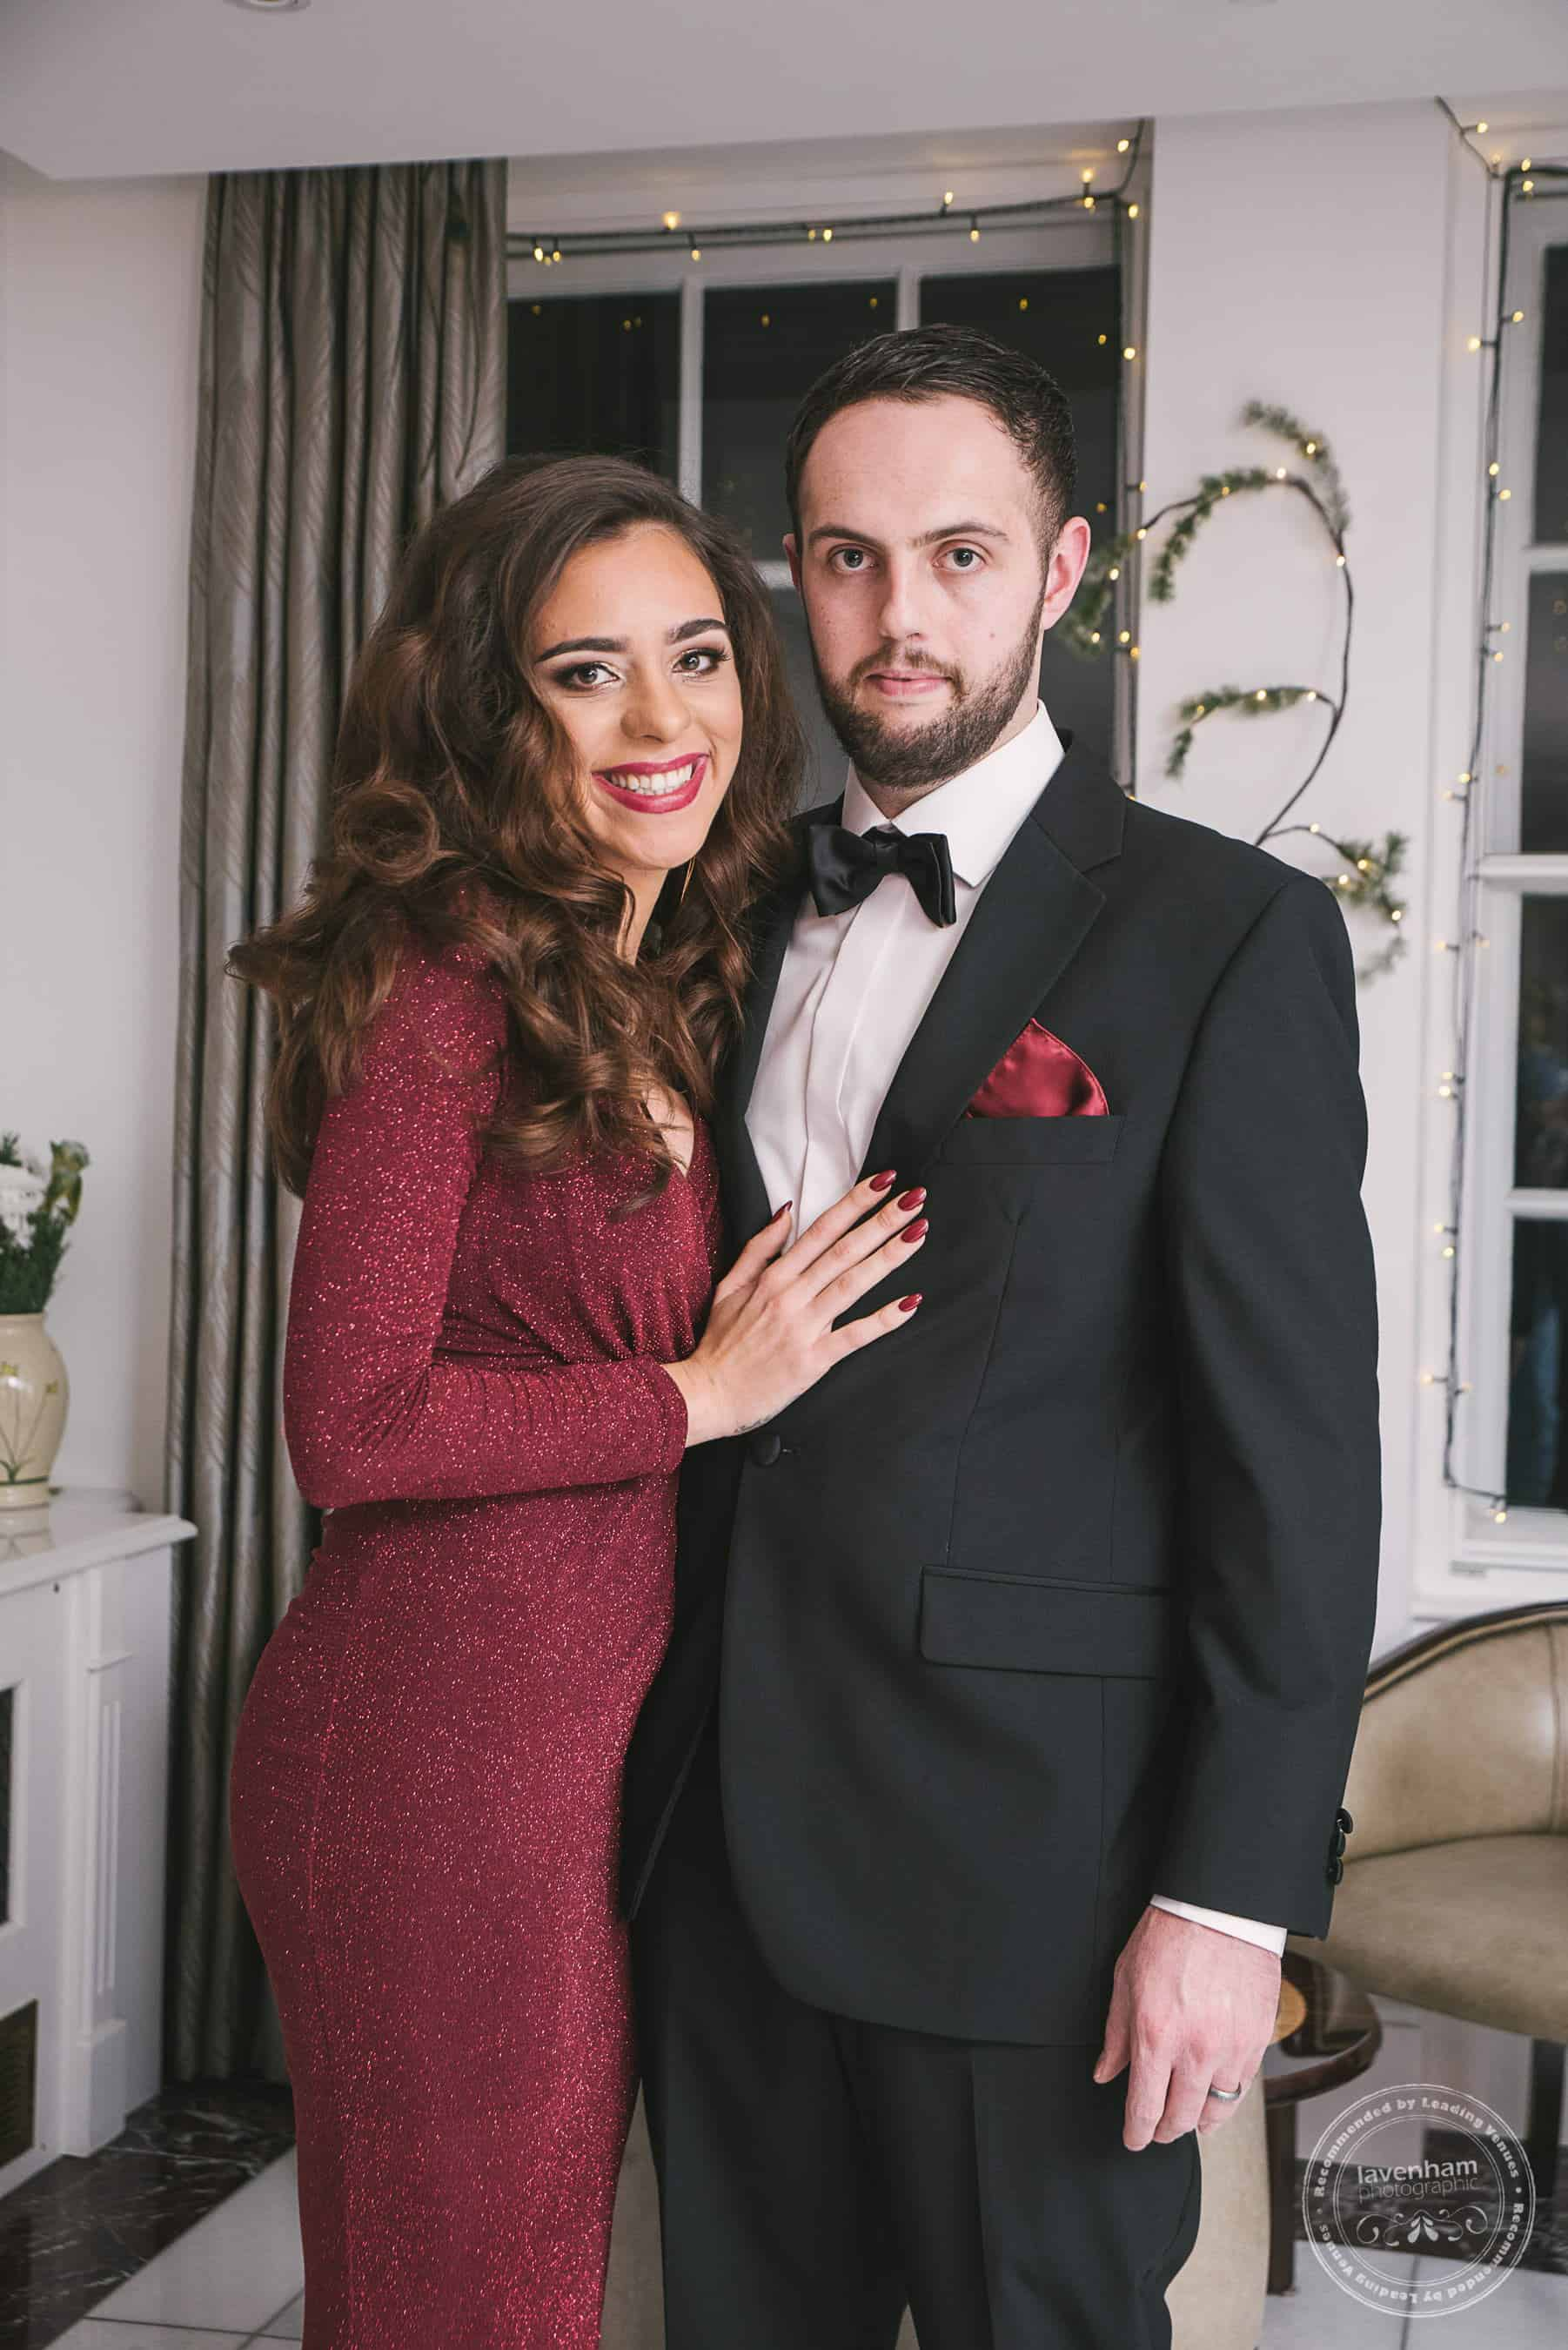 211218 Greyfriars Colchester Wedding Photography Essex Lavenham Photographic 039